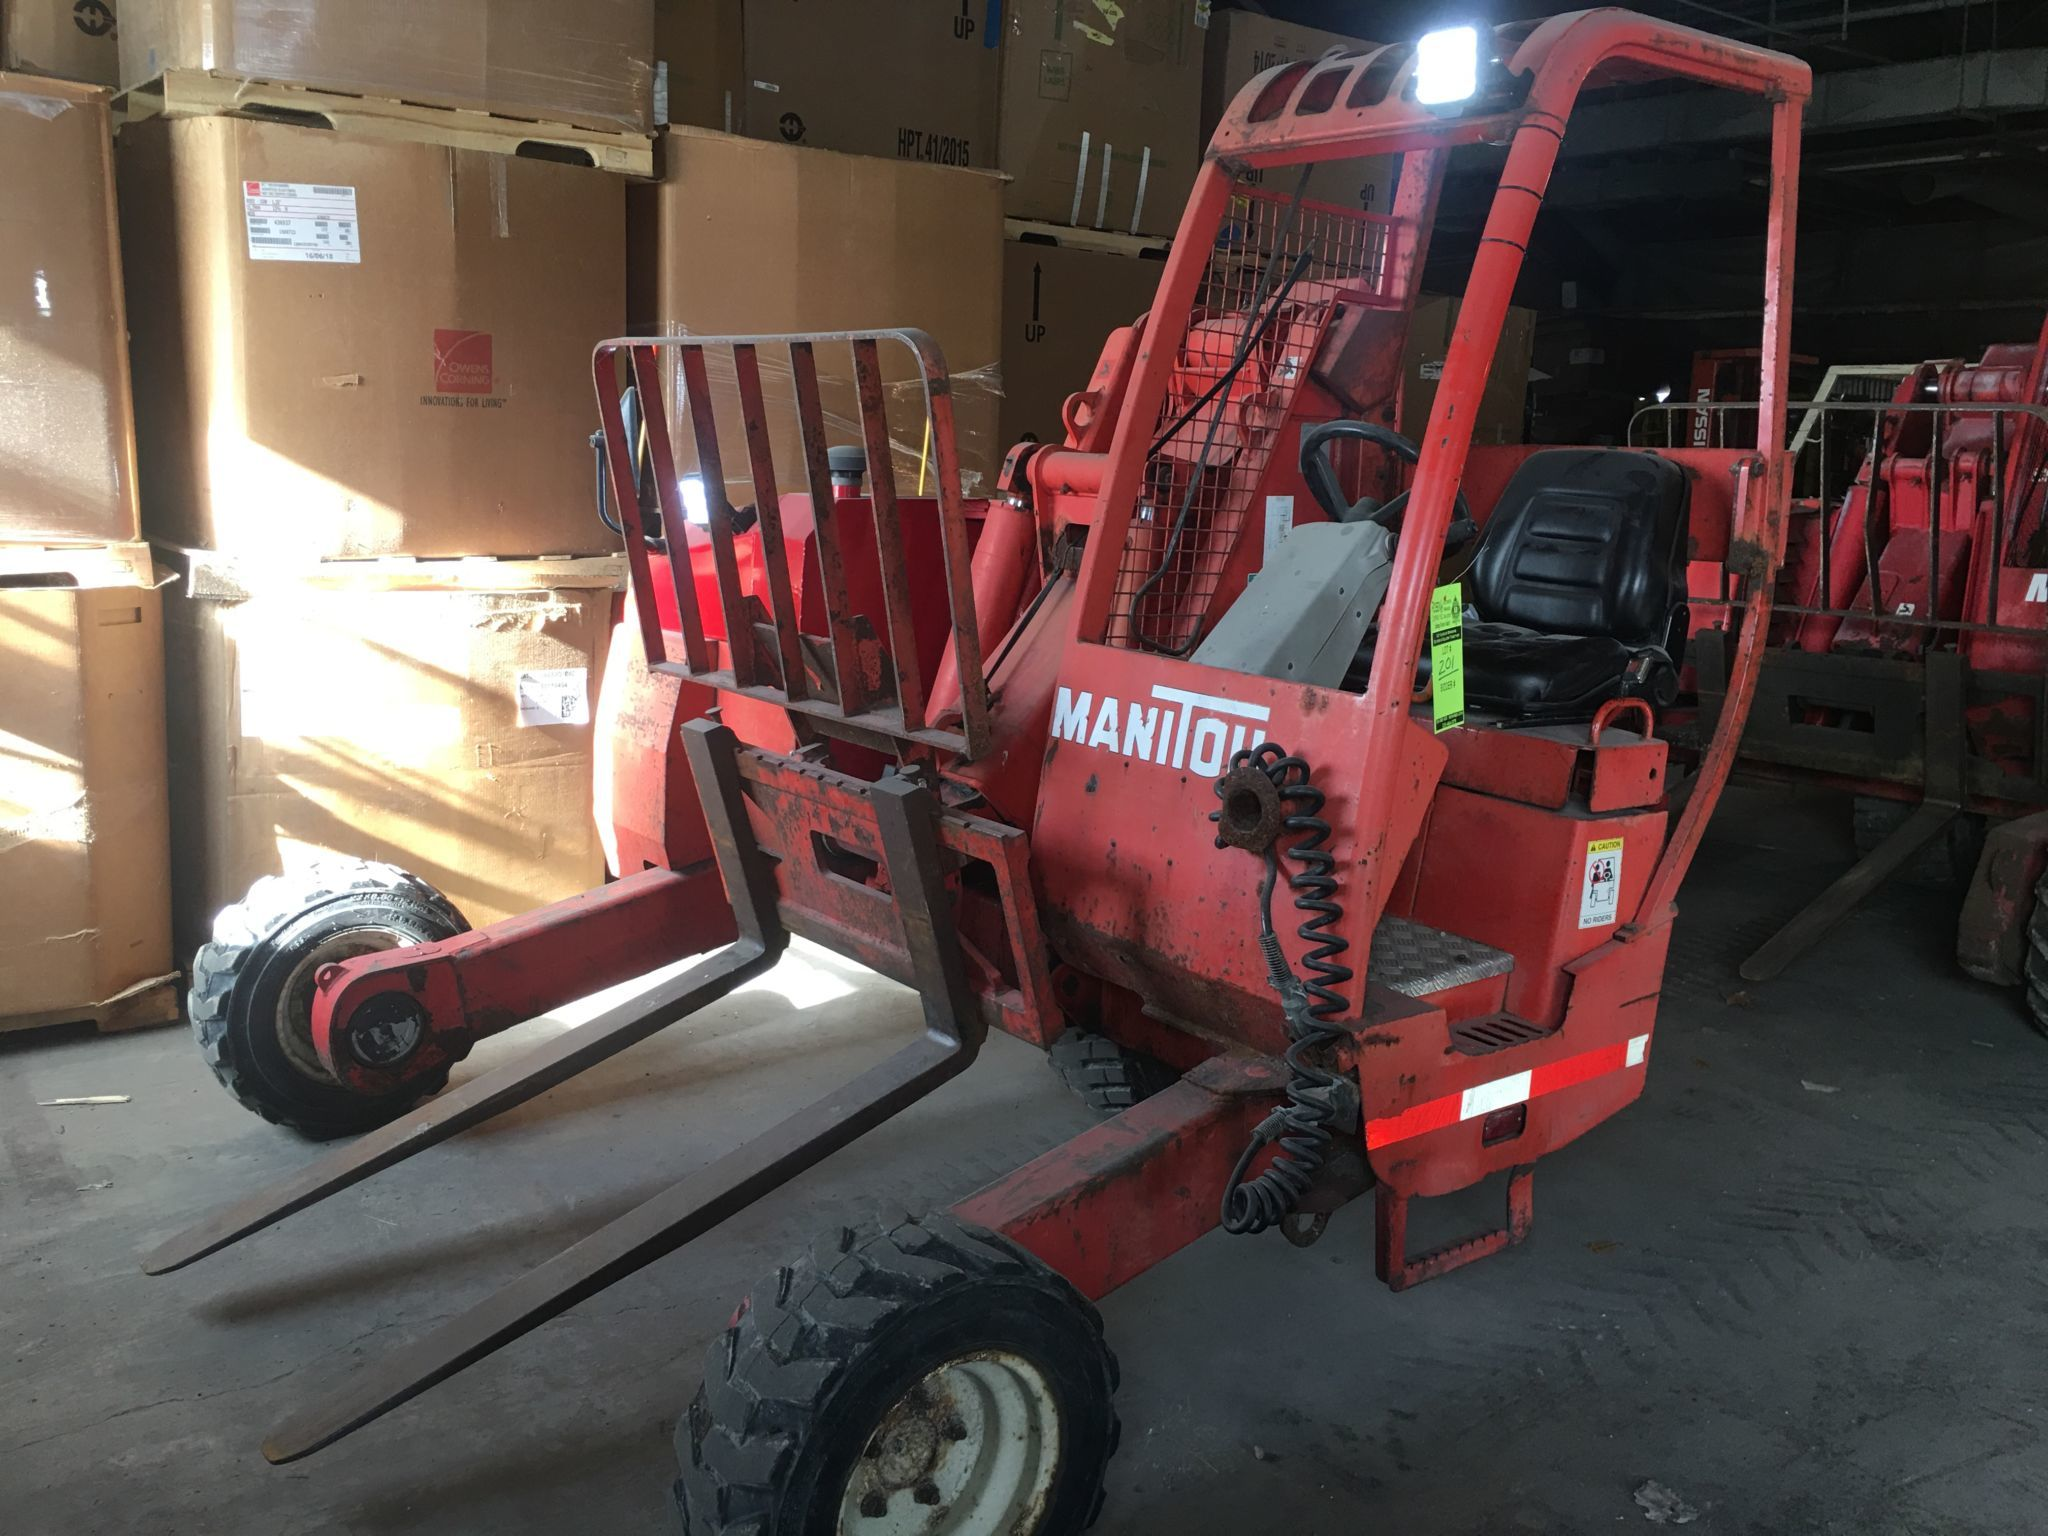 More Mantransit diesel lifts, attachments , forklifts,  concrete saws, Mowers, tools, lube/oil pots